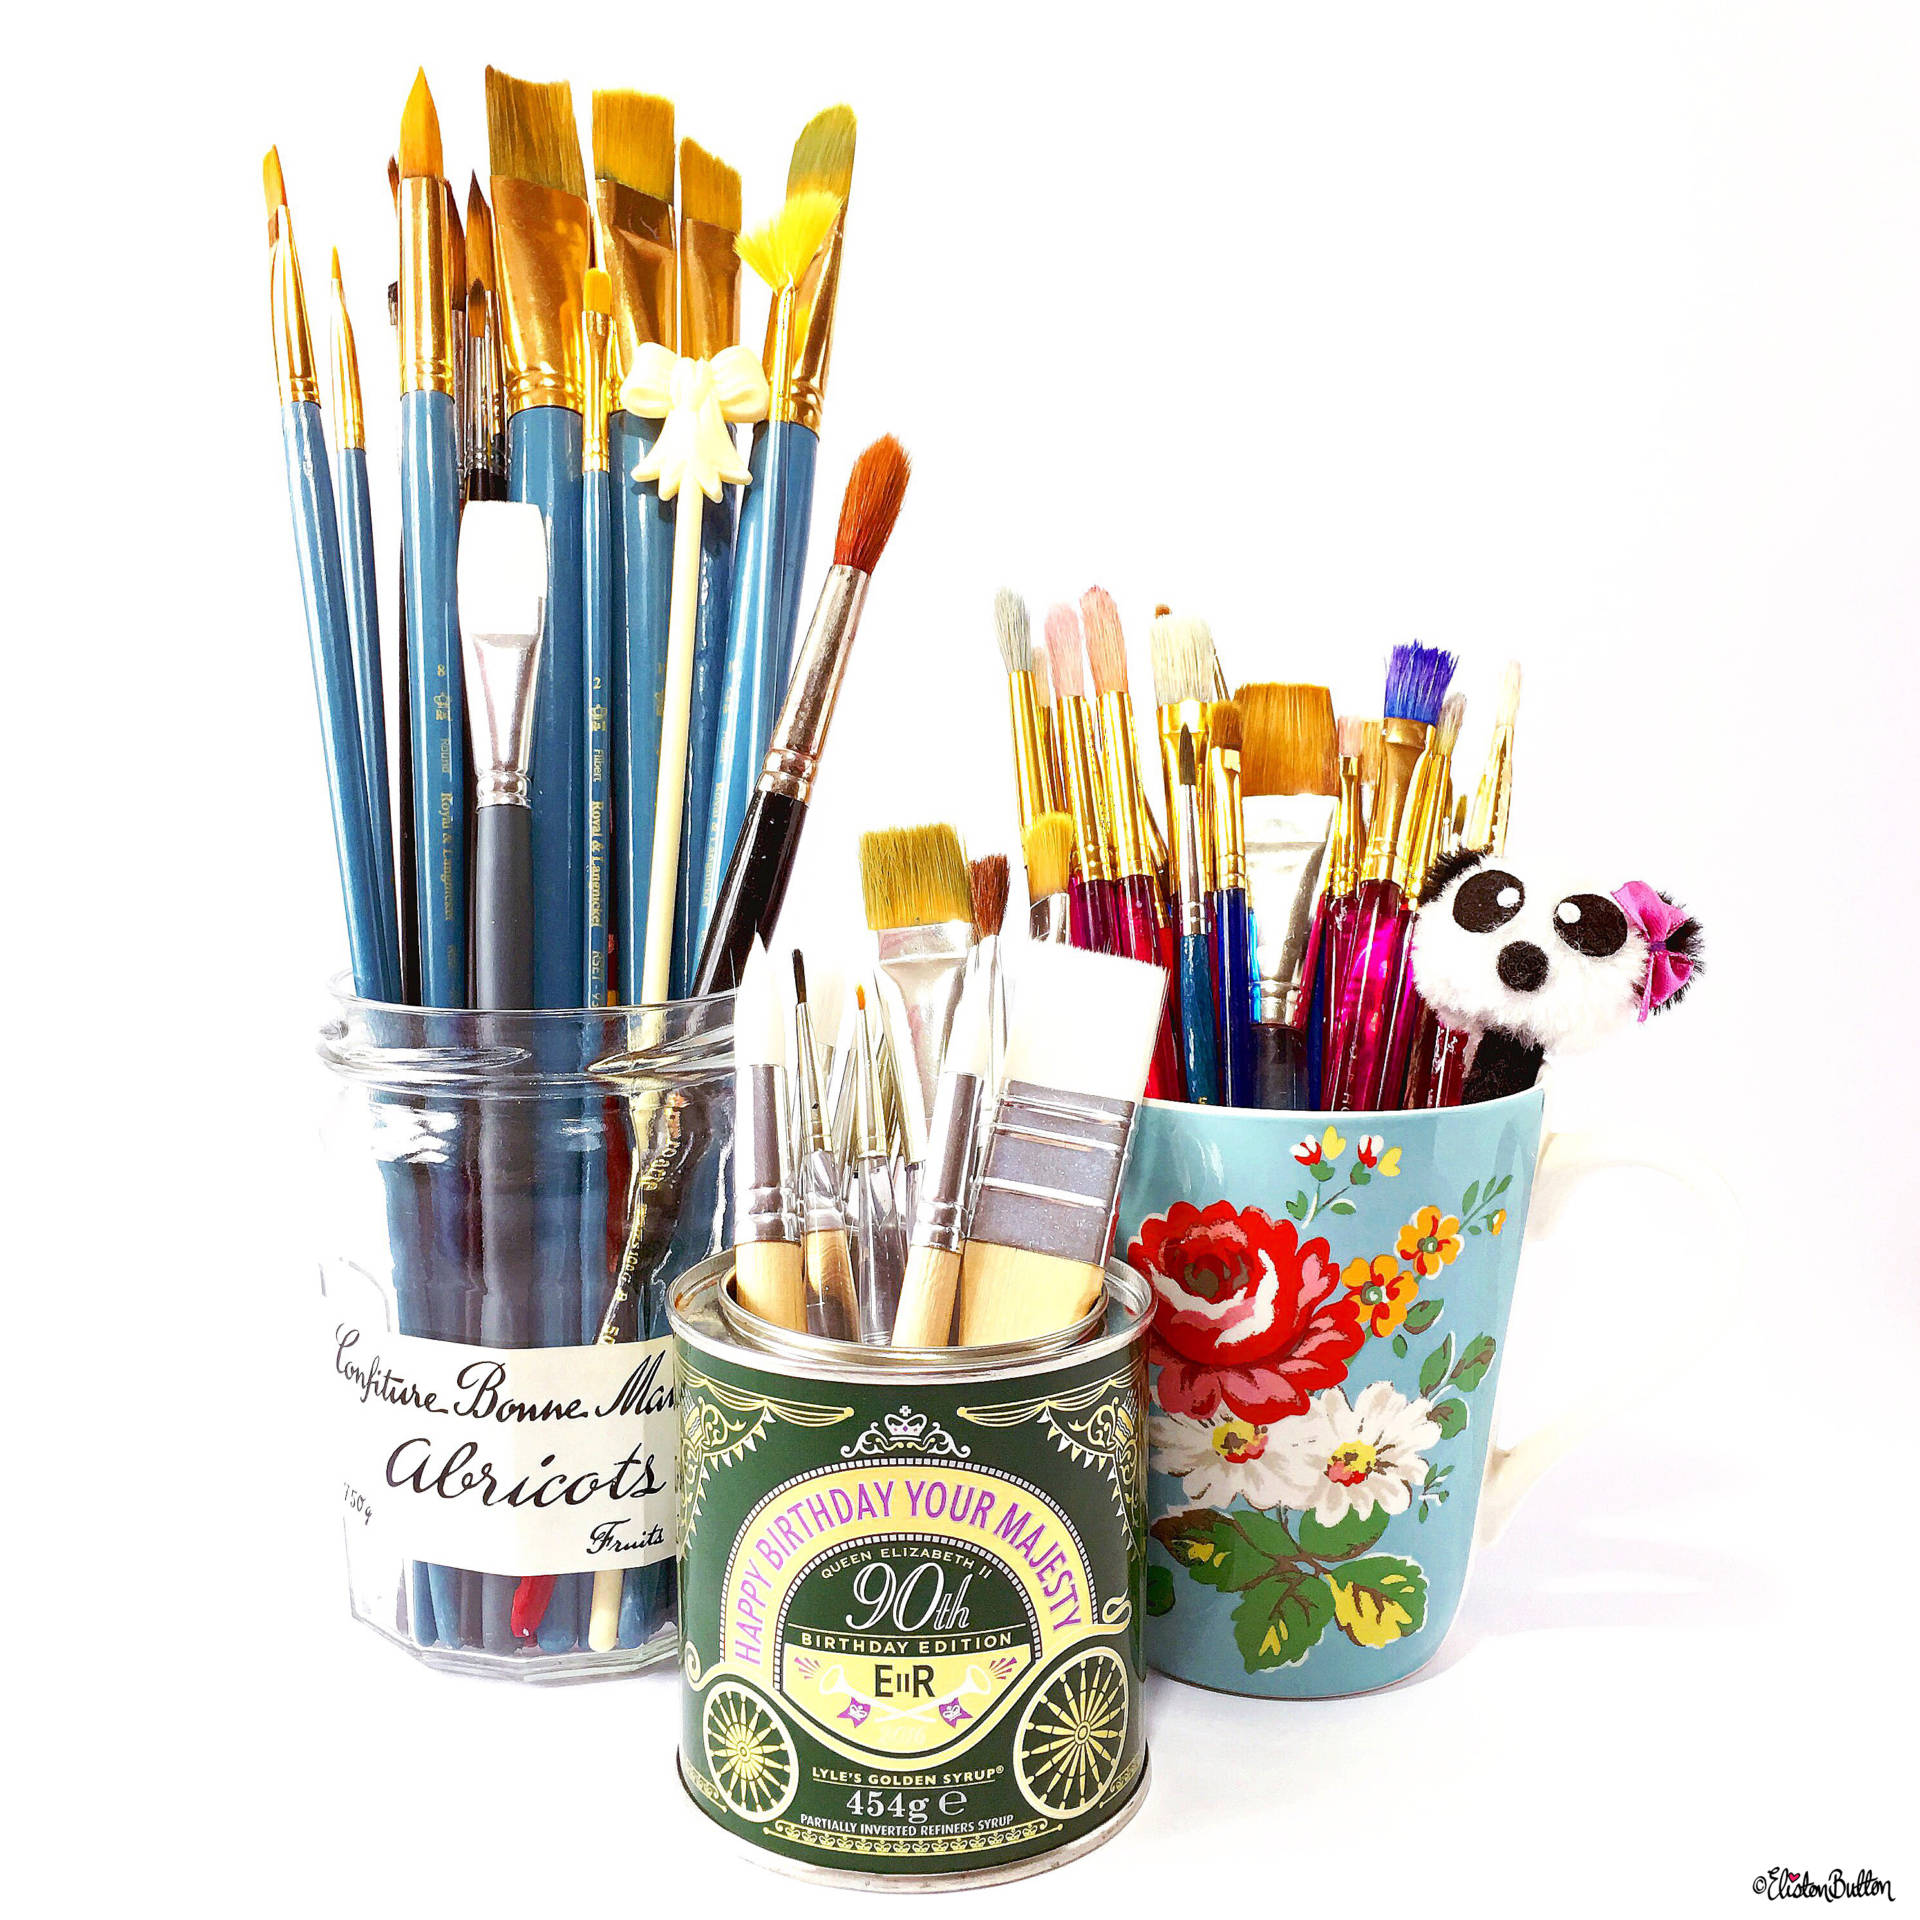 Day 29 - Three - Three Different Paint Brush Pots - Photo-a-Day - July 2016 - Eliston Button A-Z of Craft at www.elistonbutton.com - Eliston Button - That Crafty Kid – Art, Design, Craft & Adventure.